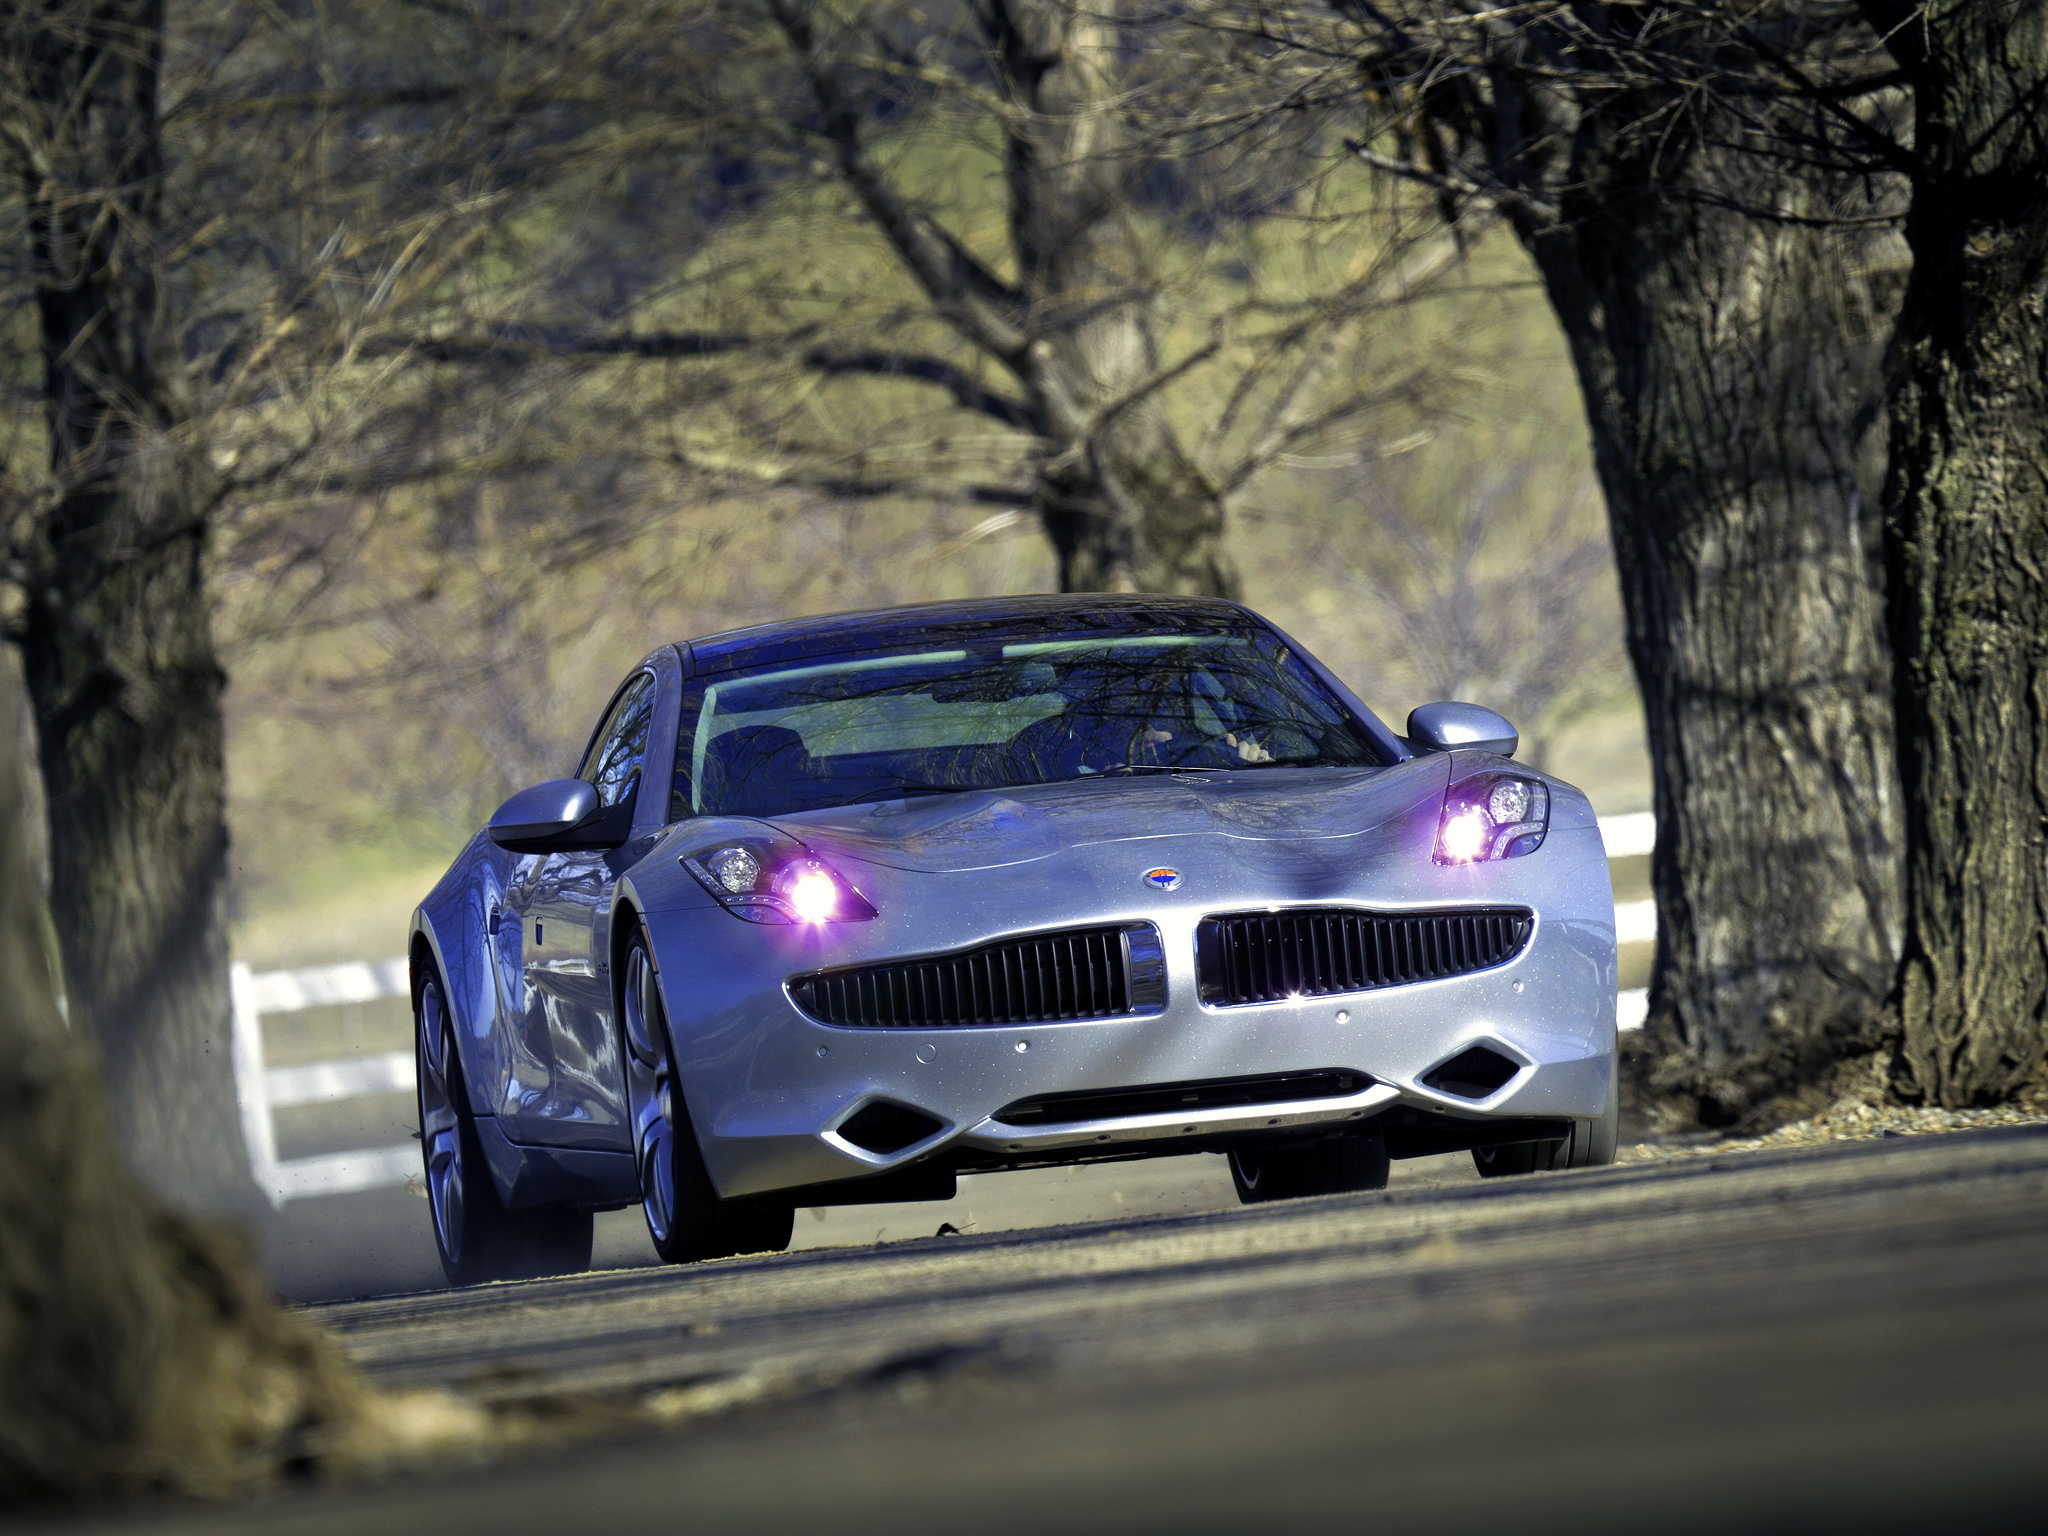 Fisker Karma Ever Cars Lights Road Trees Supercar Supercars